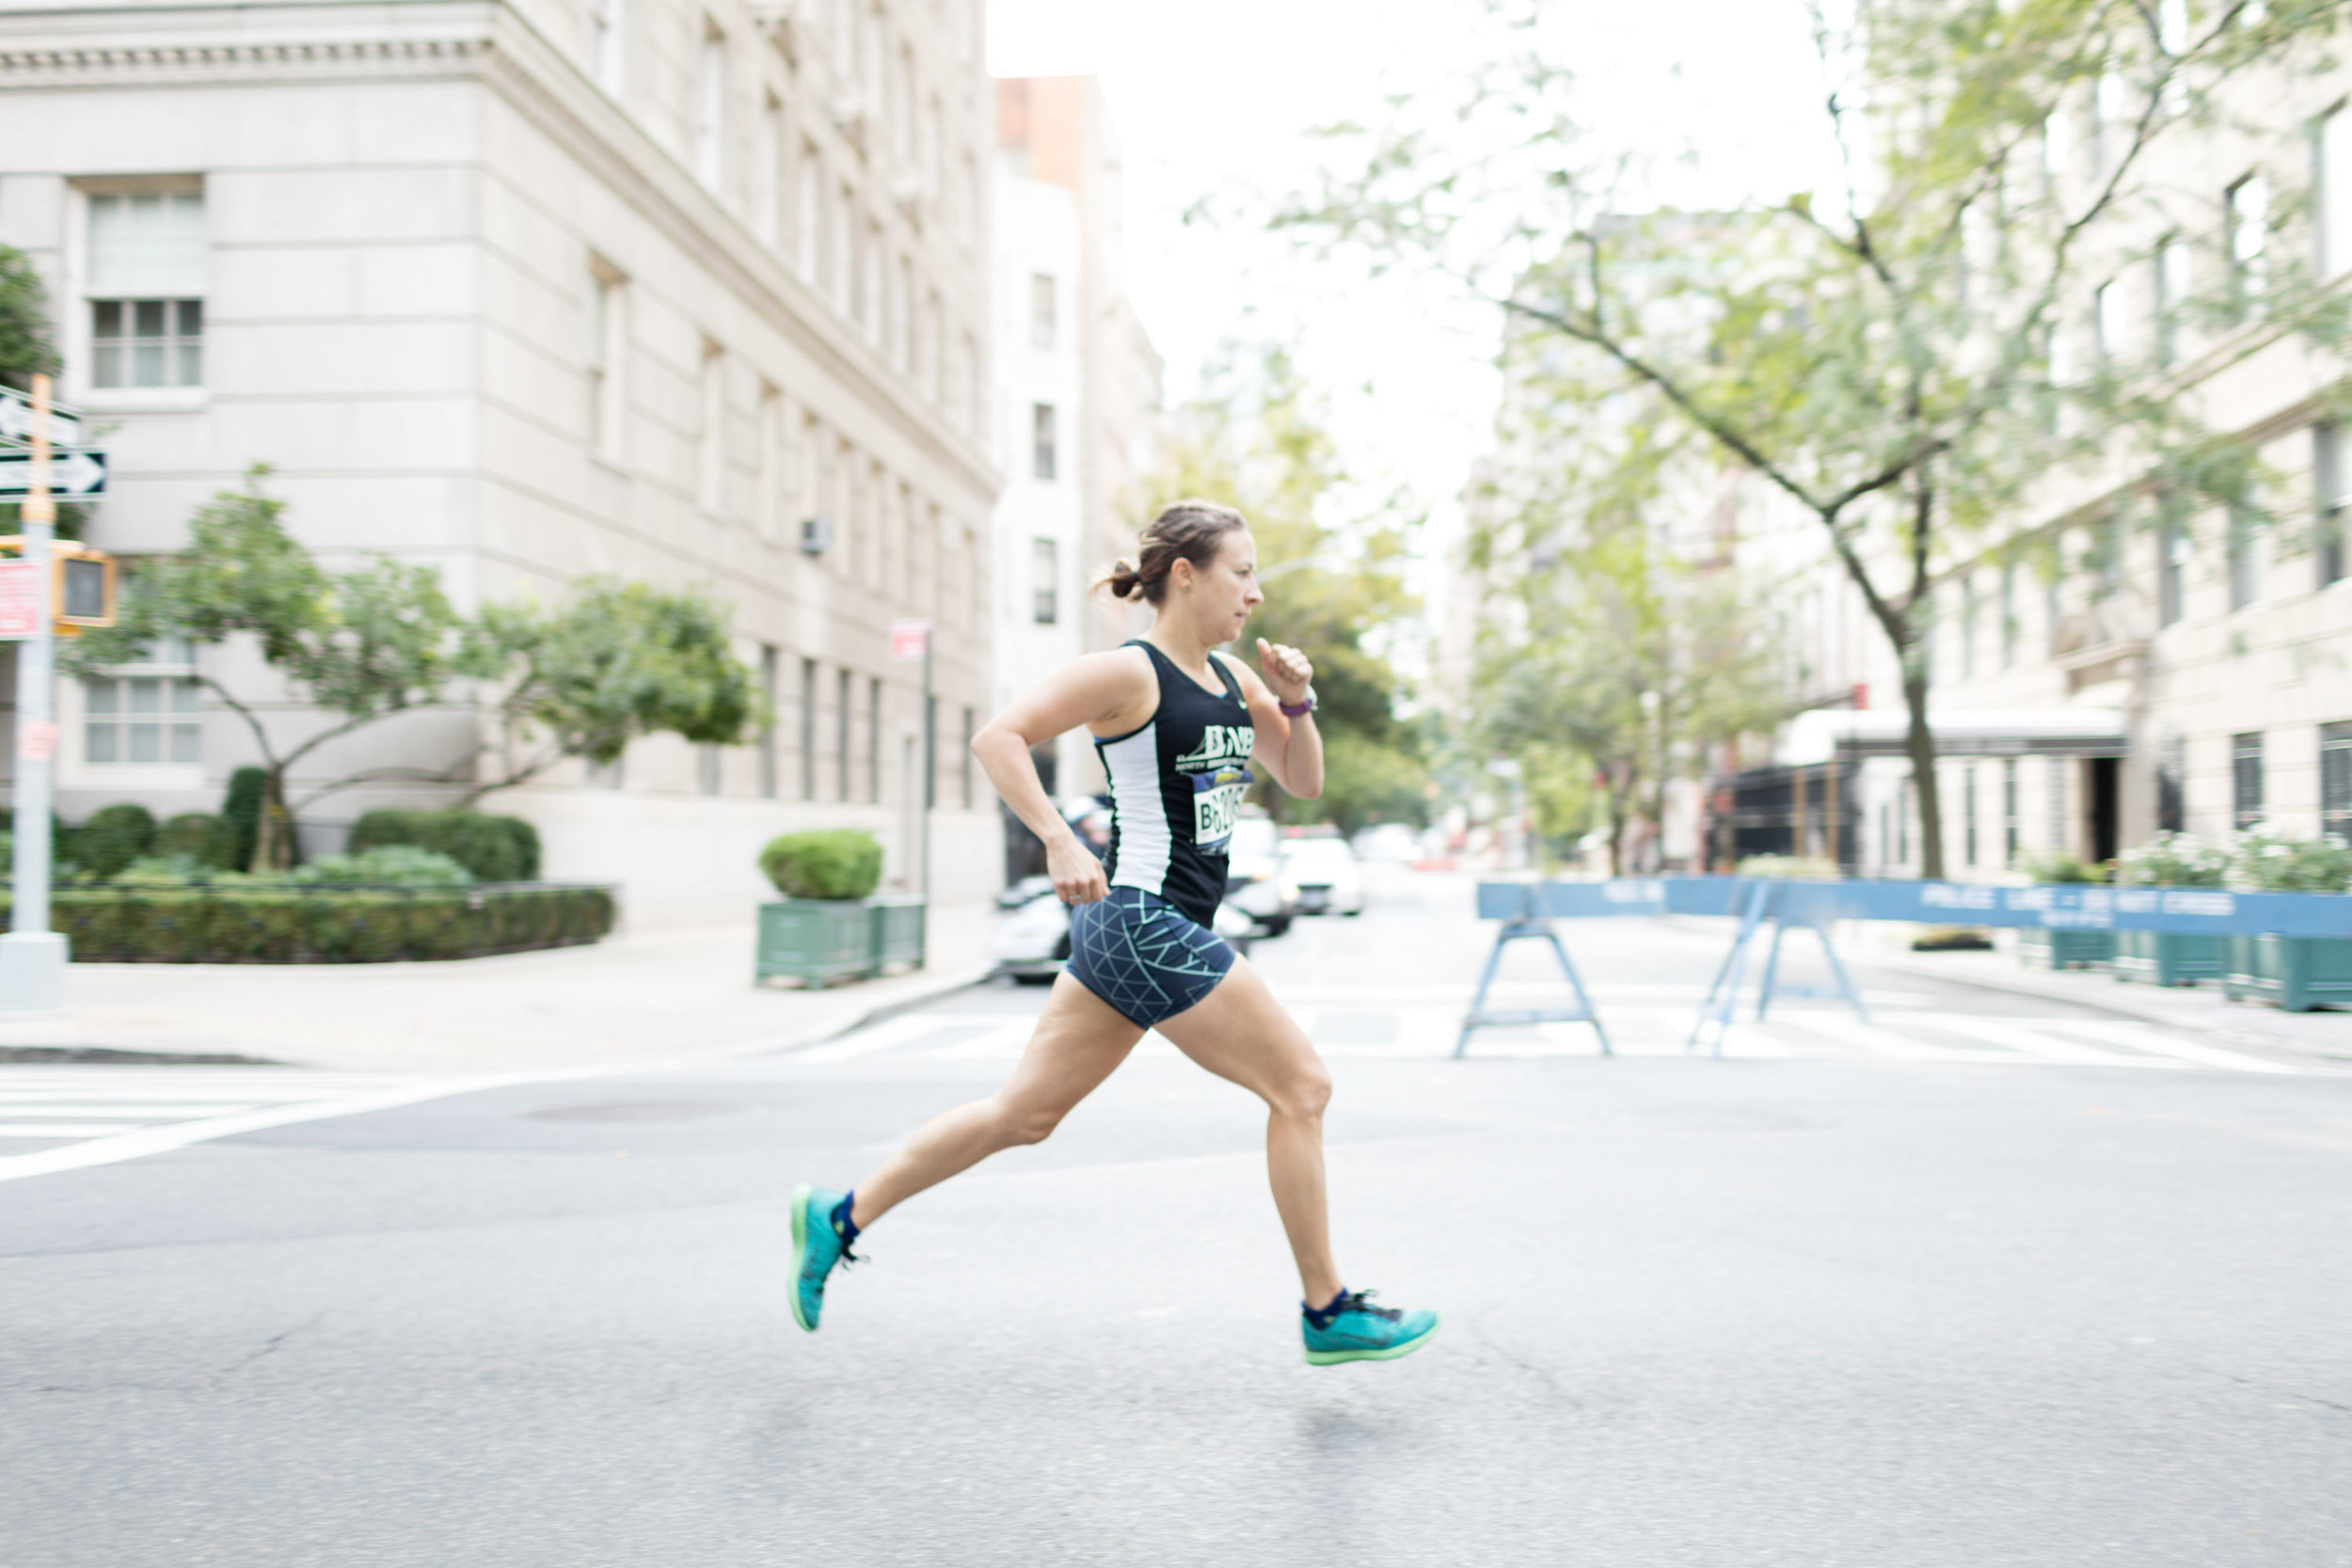 Marie running the Fifth Avenue Mile. Photo by Ken Allen.